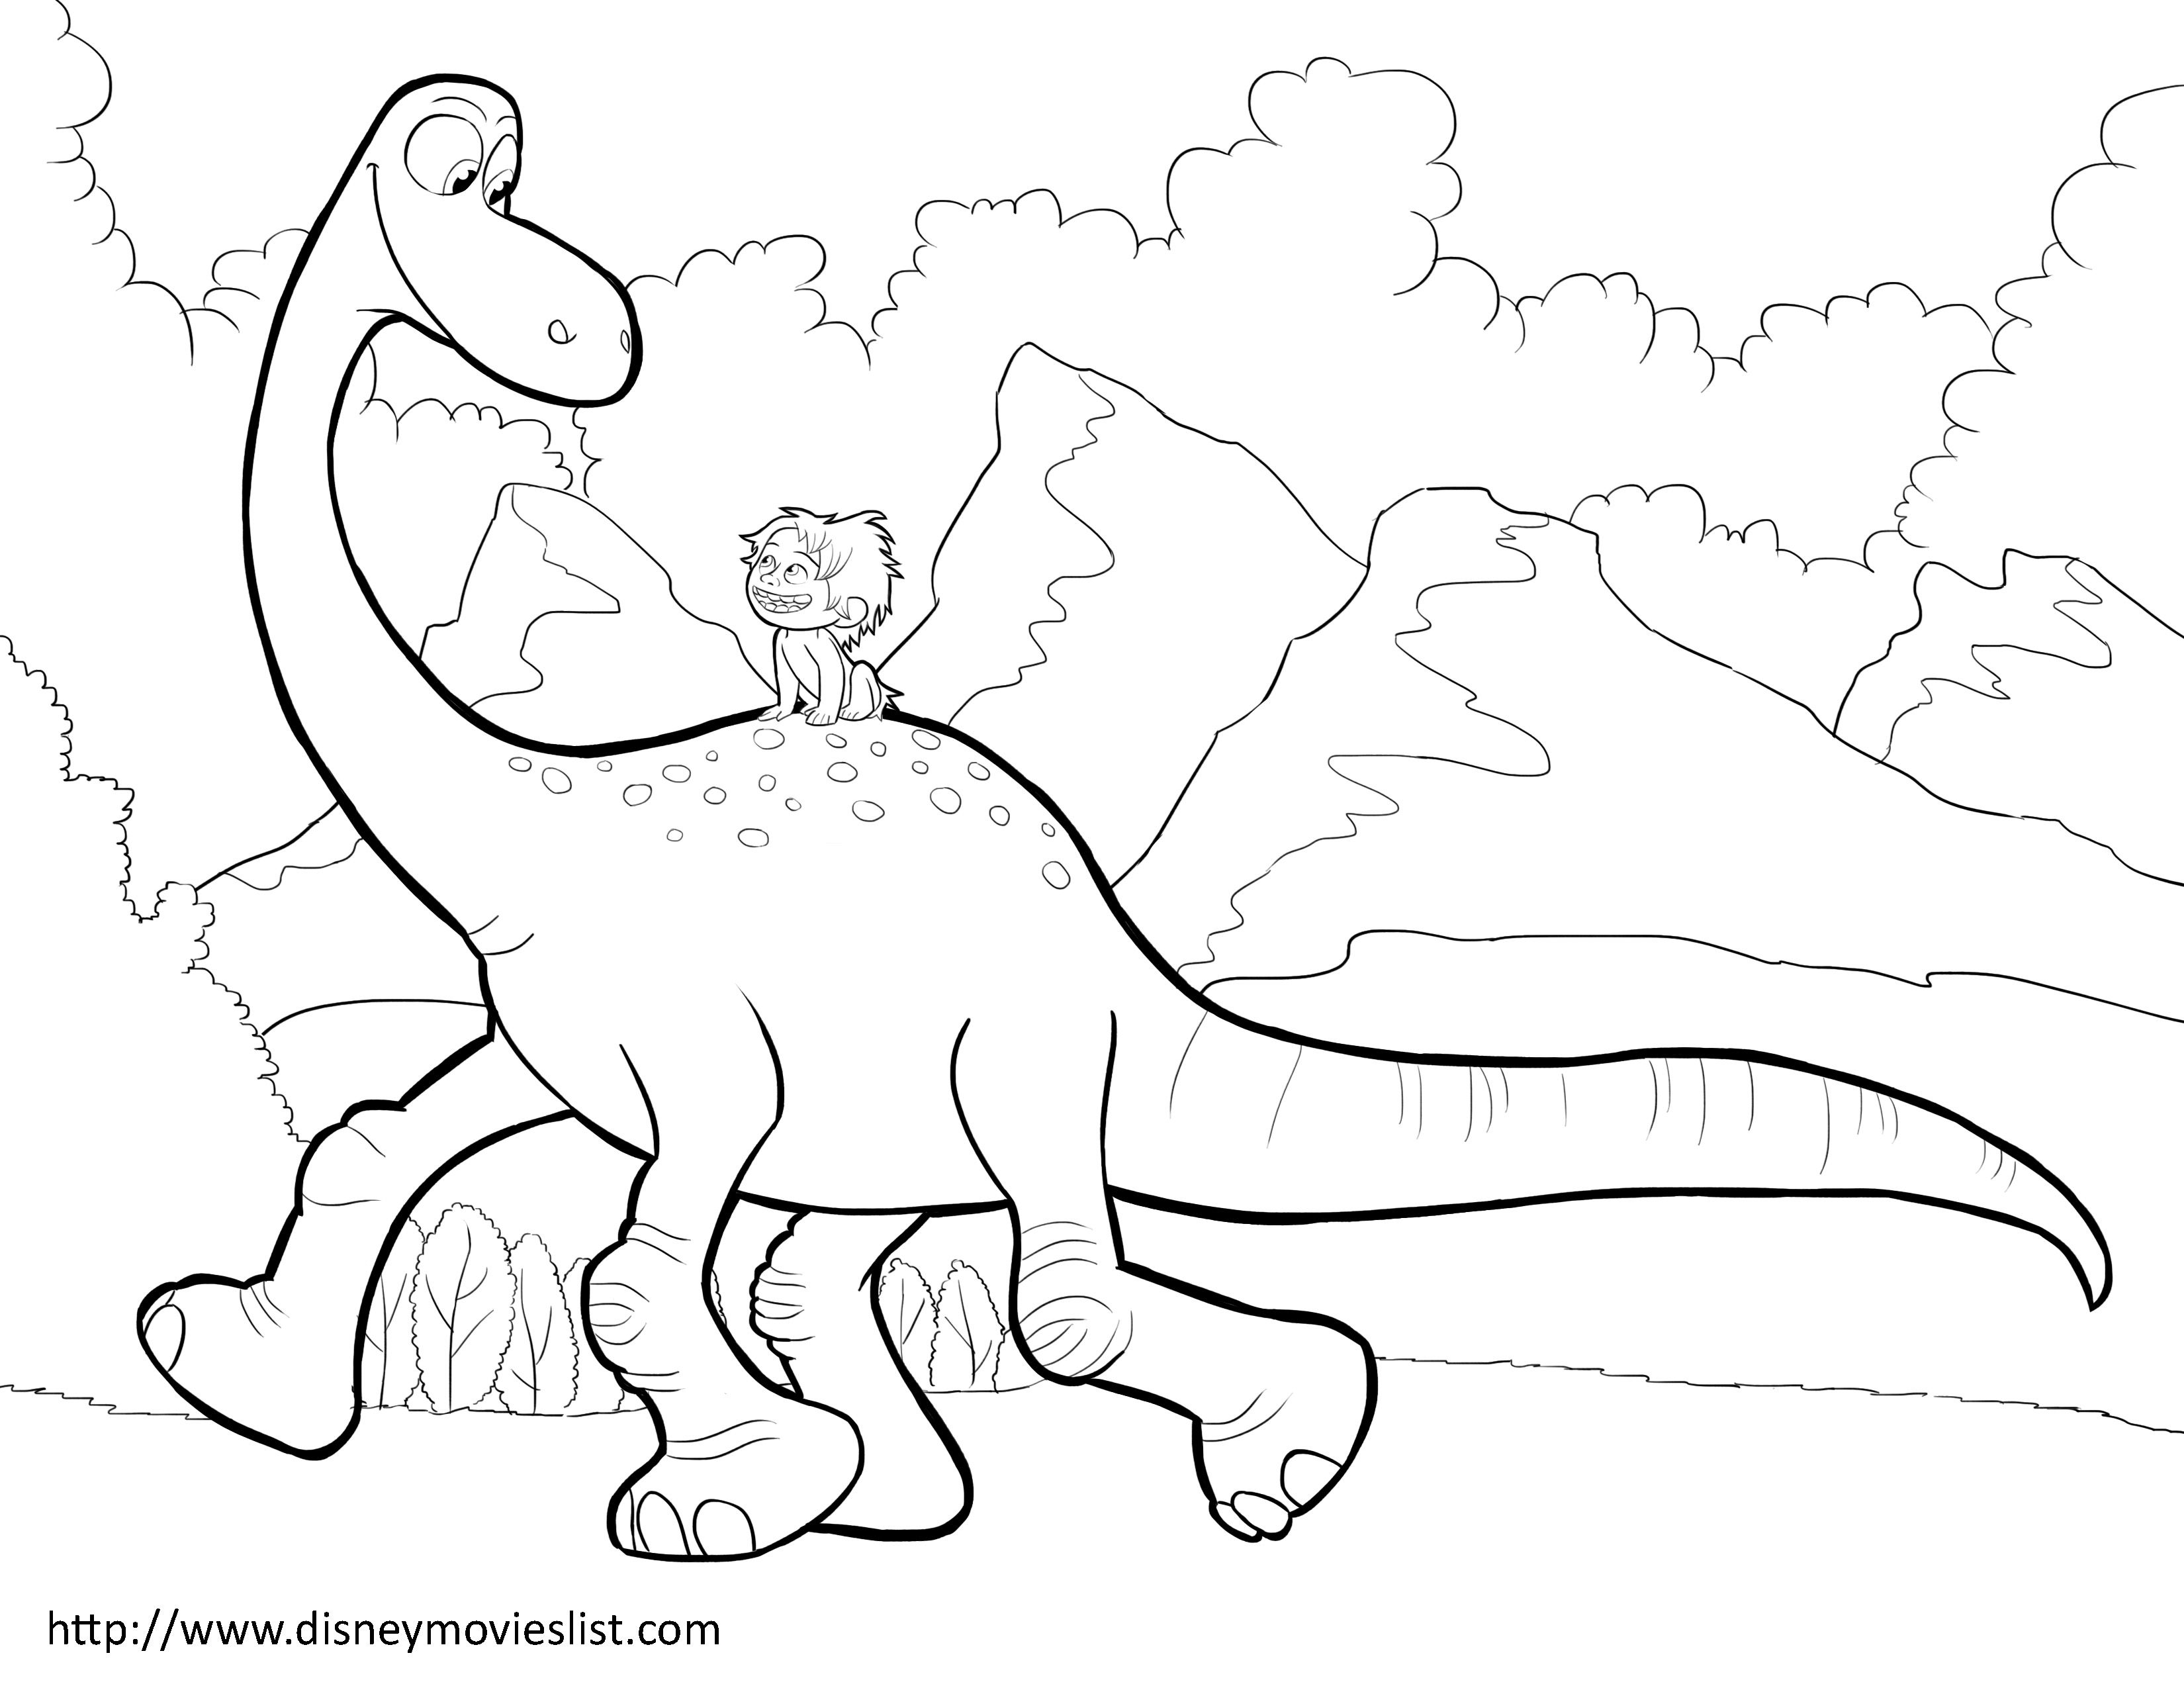 Disneys The Good Dinosaur Arlo And Spot Coloring Page